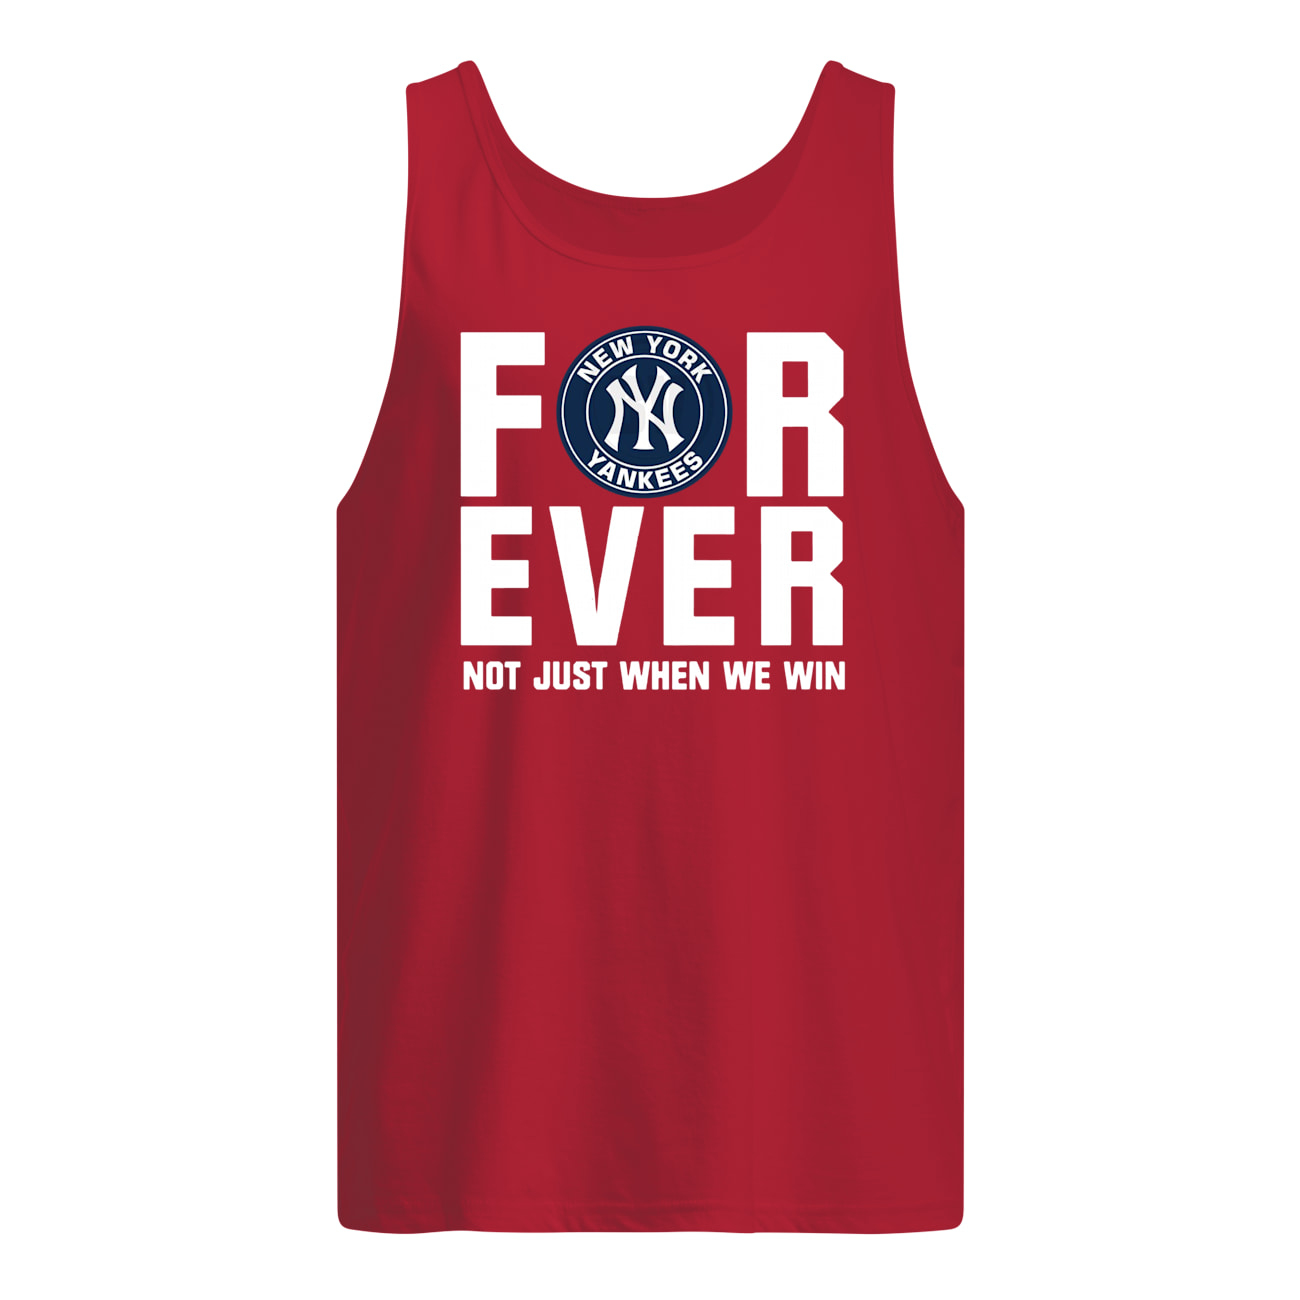 New york yankees forever not just when we win tank top